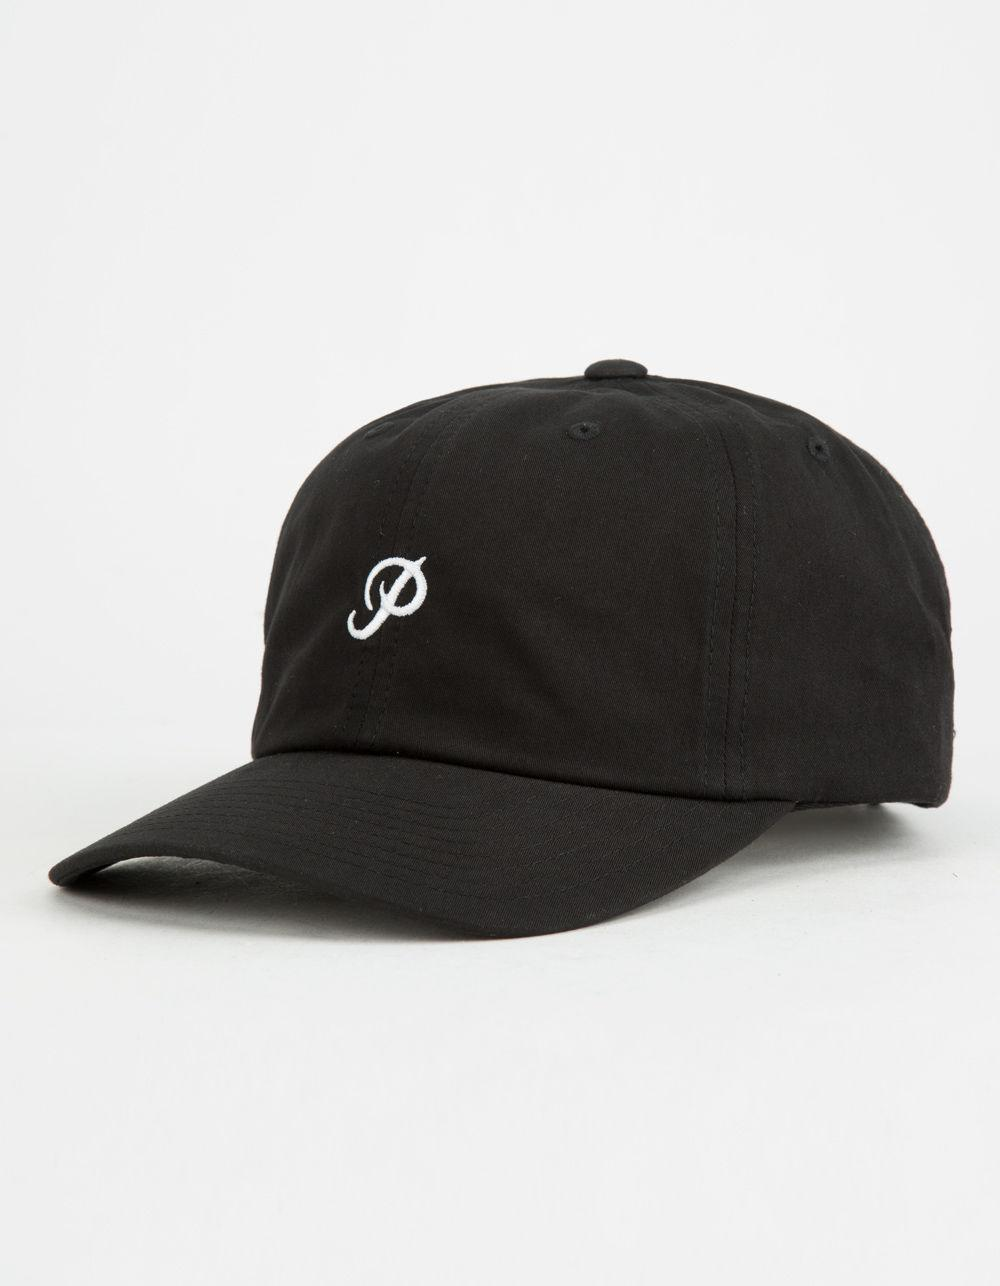 Baseball Cap With Mini Classic Logo In Black - Black Primitive fHmRvvKtR3